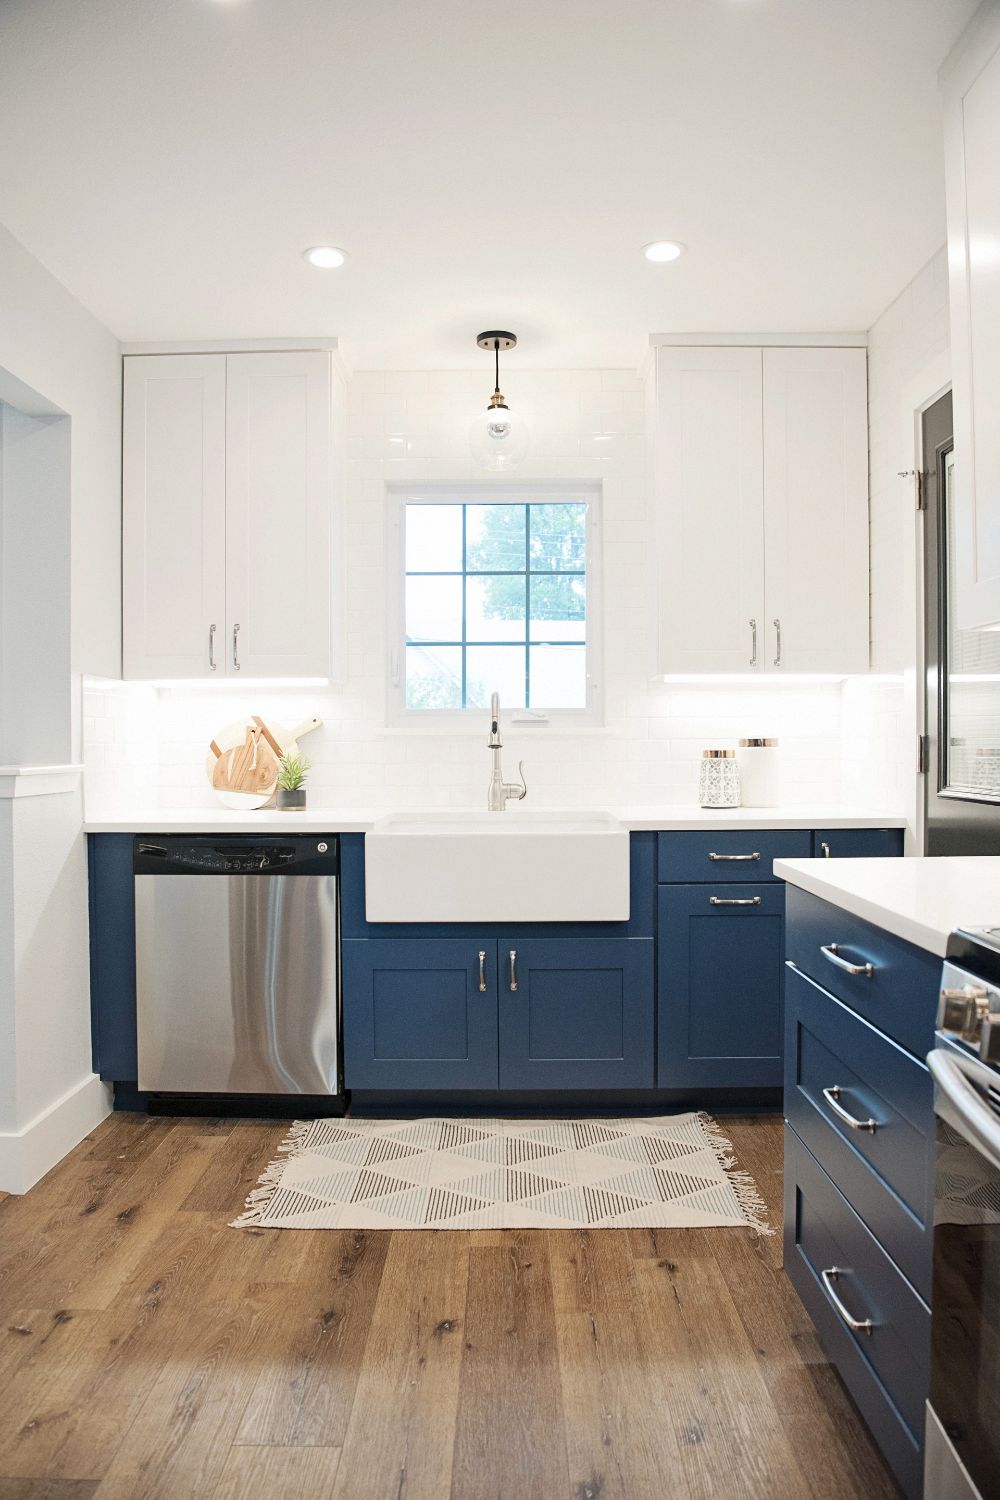 trend alert blue kitchen cabinets wolf home products paintingkitchencabinets kitchen on kitchen cabinets blue id=60505